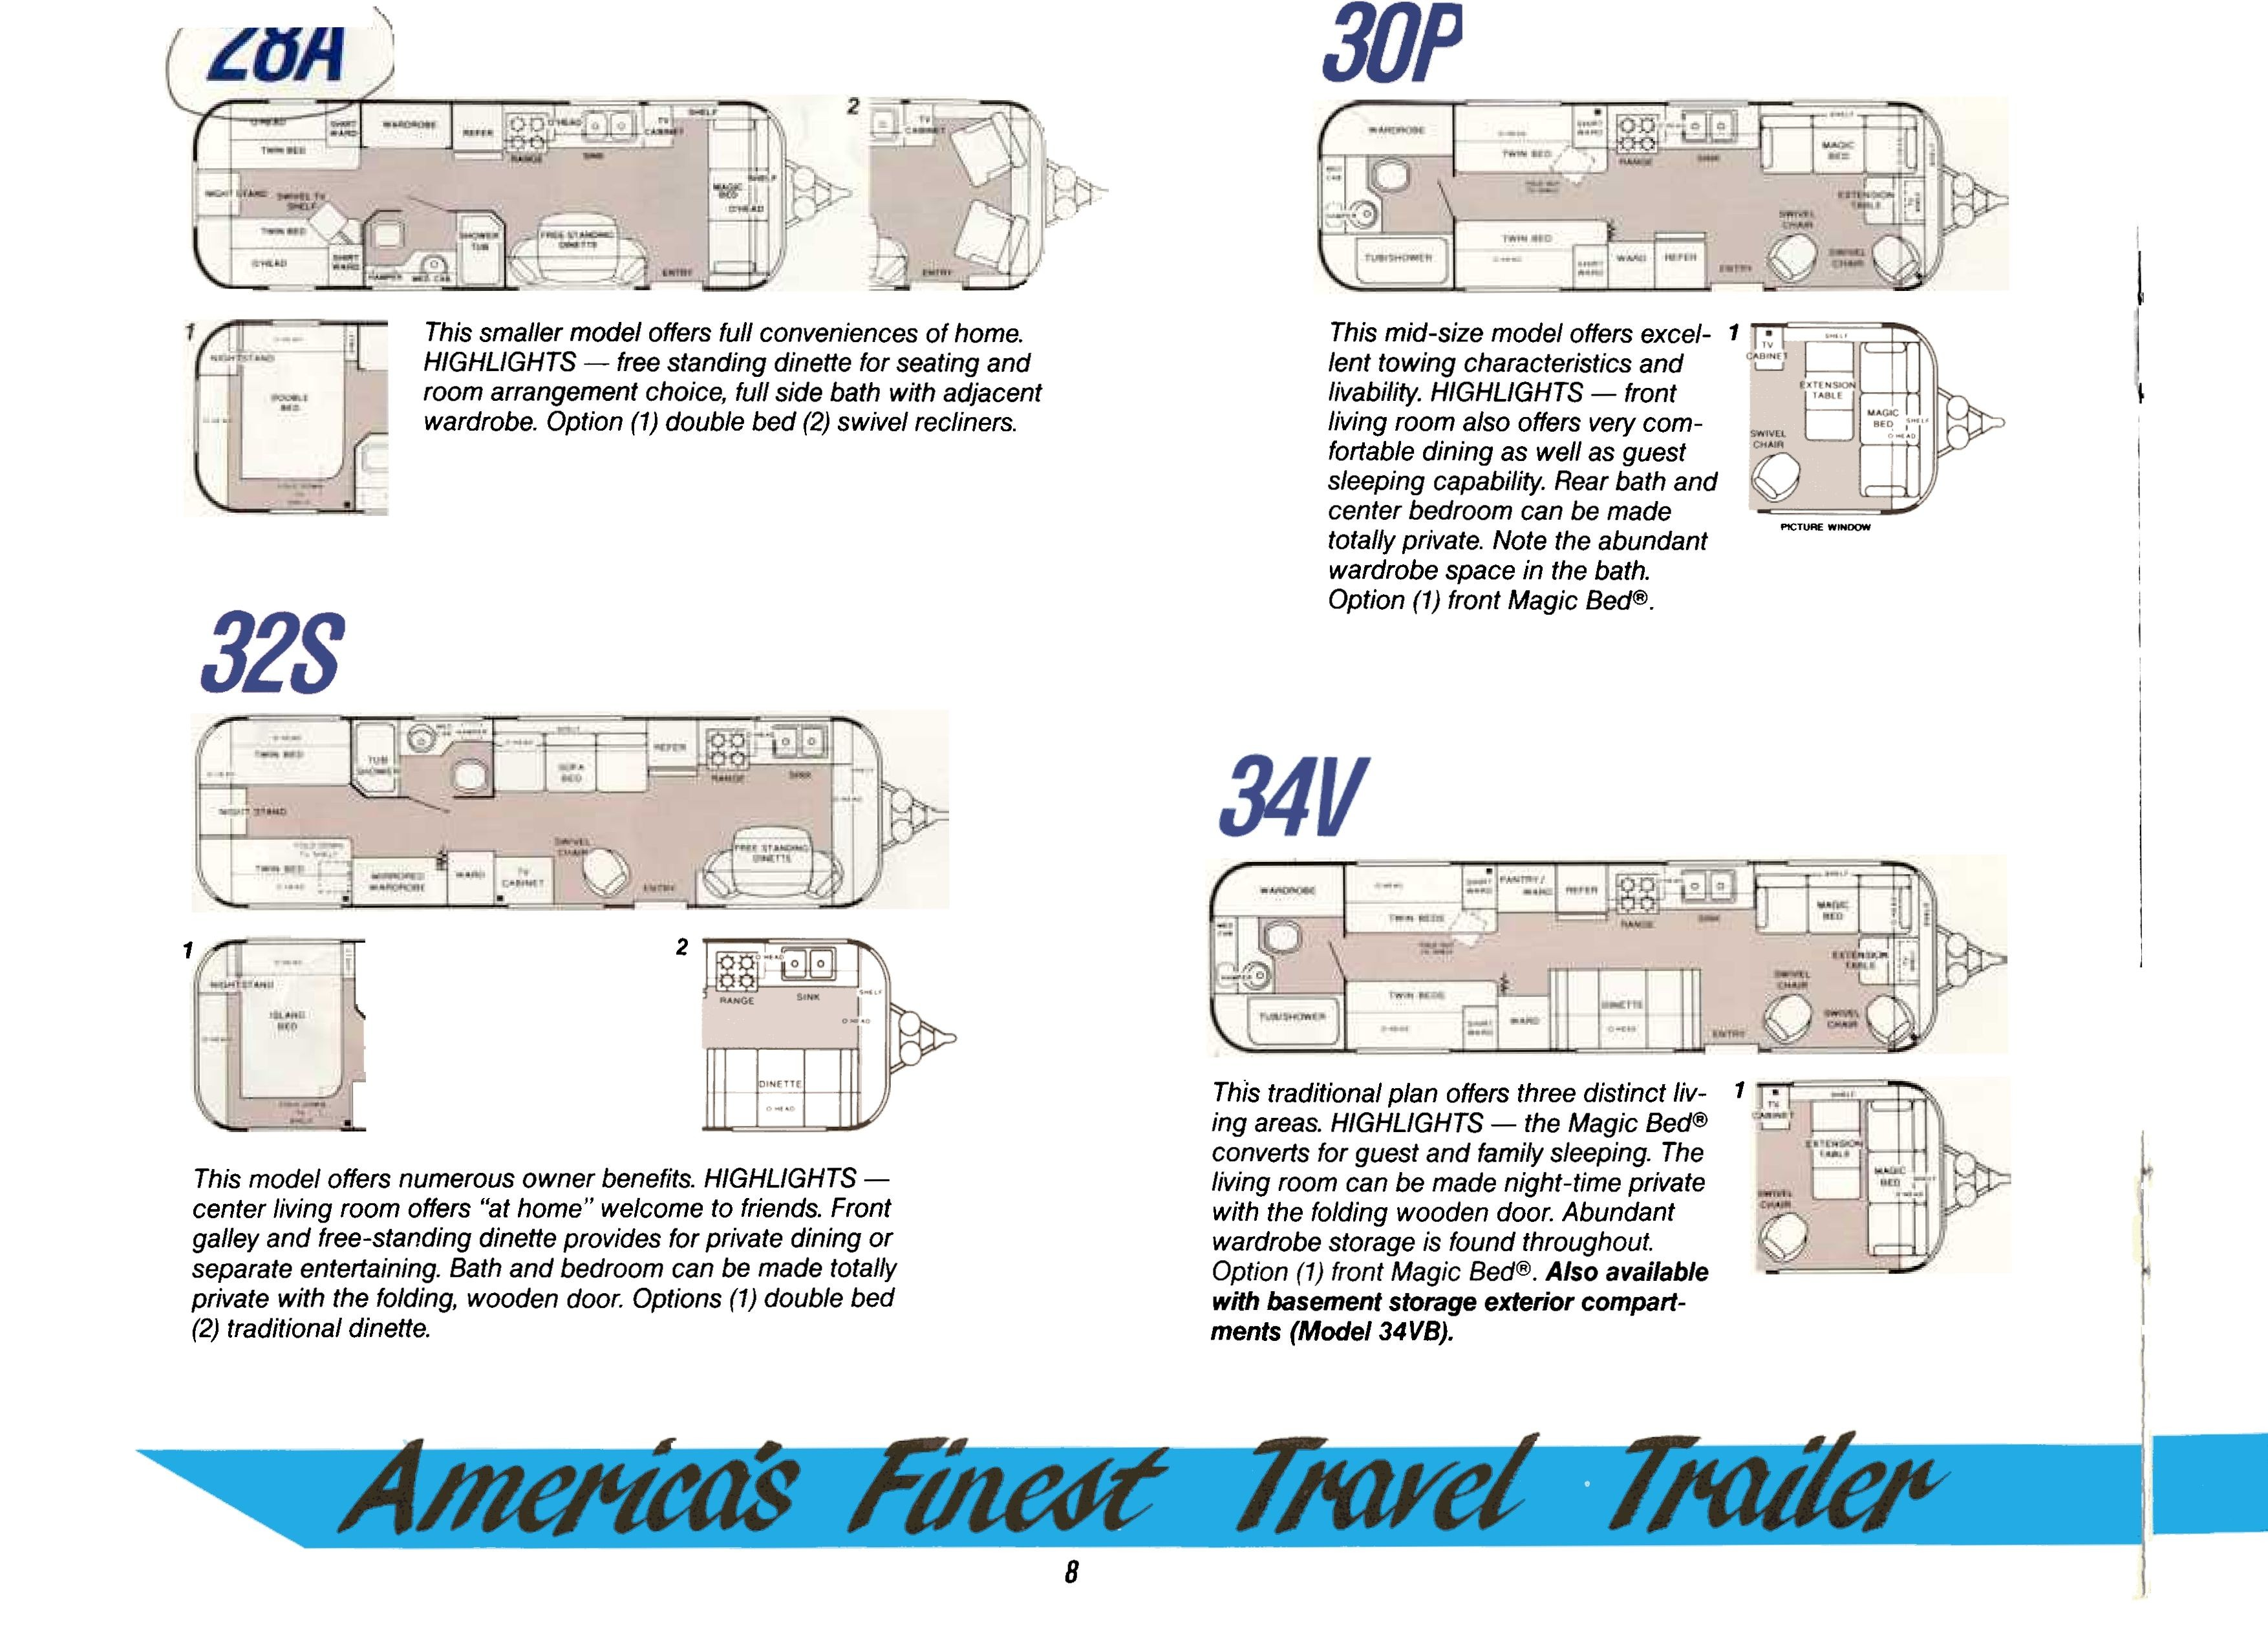 Double wide wiring diagram wiring data fleetwood double wide mobile home wiring diagrams wiring diagram studio wiring diagram double wide mobile home asfbconference2016 Image collections